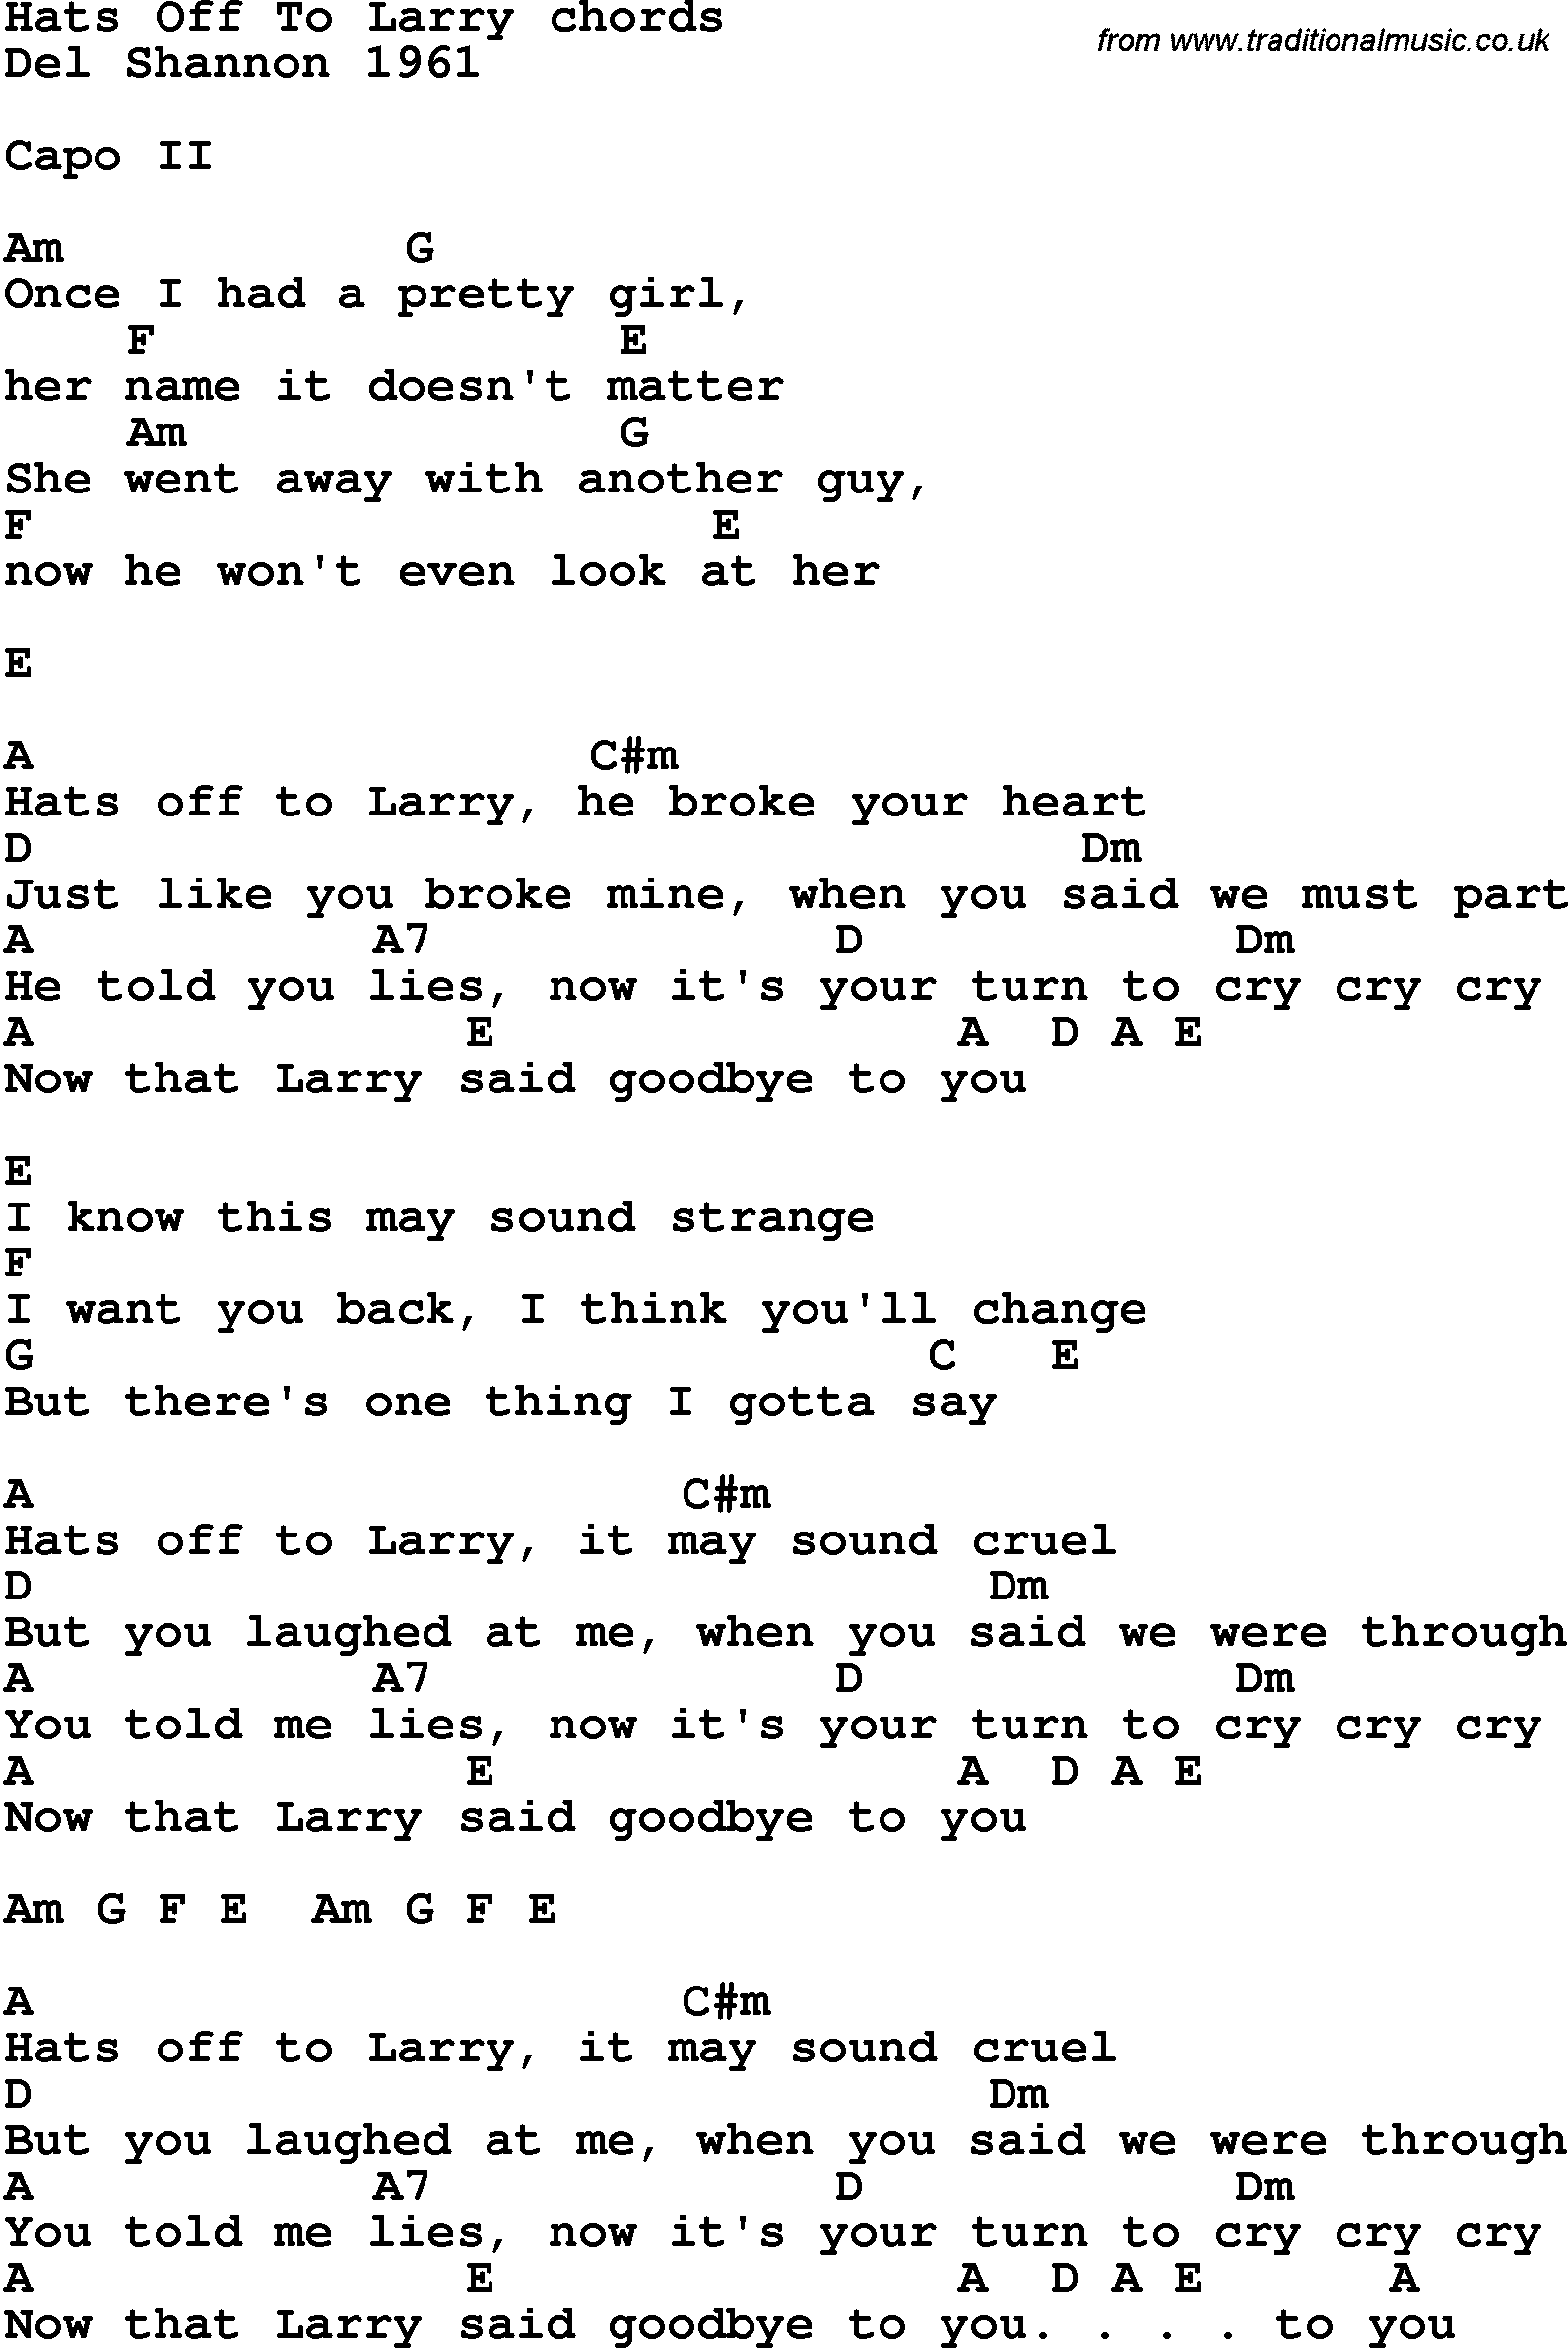 Song Lyrics With Guitar Chords For Hats Off To Larry